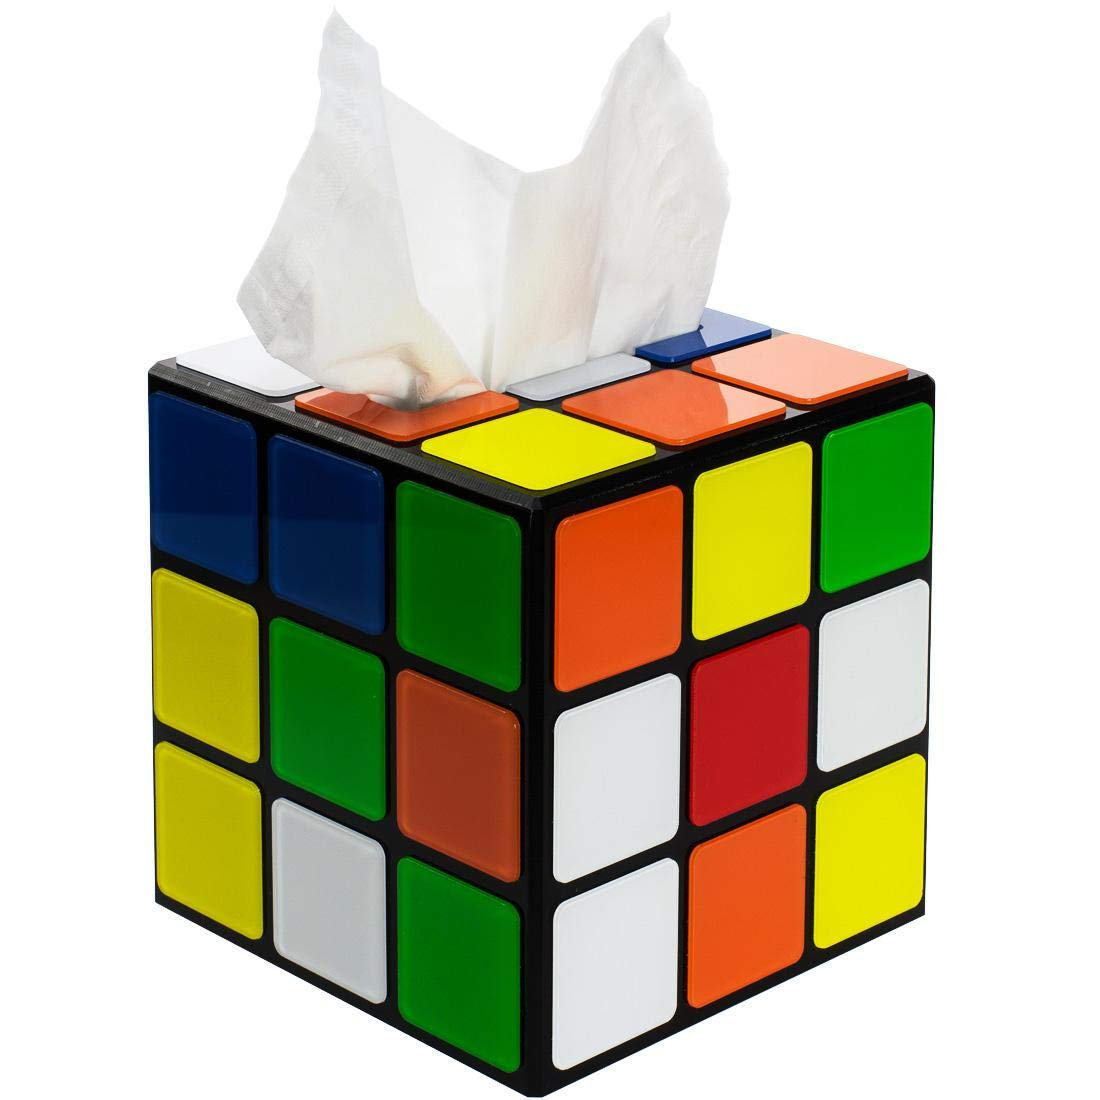 getDigital Magic Cube Tissue Box Cover Inspired by The Big Bang Theory - Decorative Holder for Square Tissue Boxes with a Secure Magnetic Lock - 5.5 x 5.5 x 5.5 inch